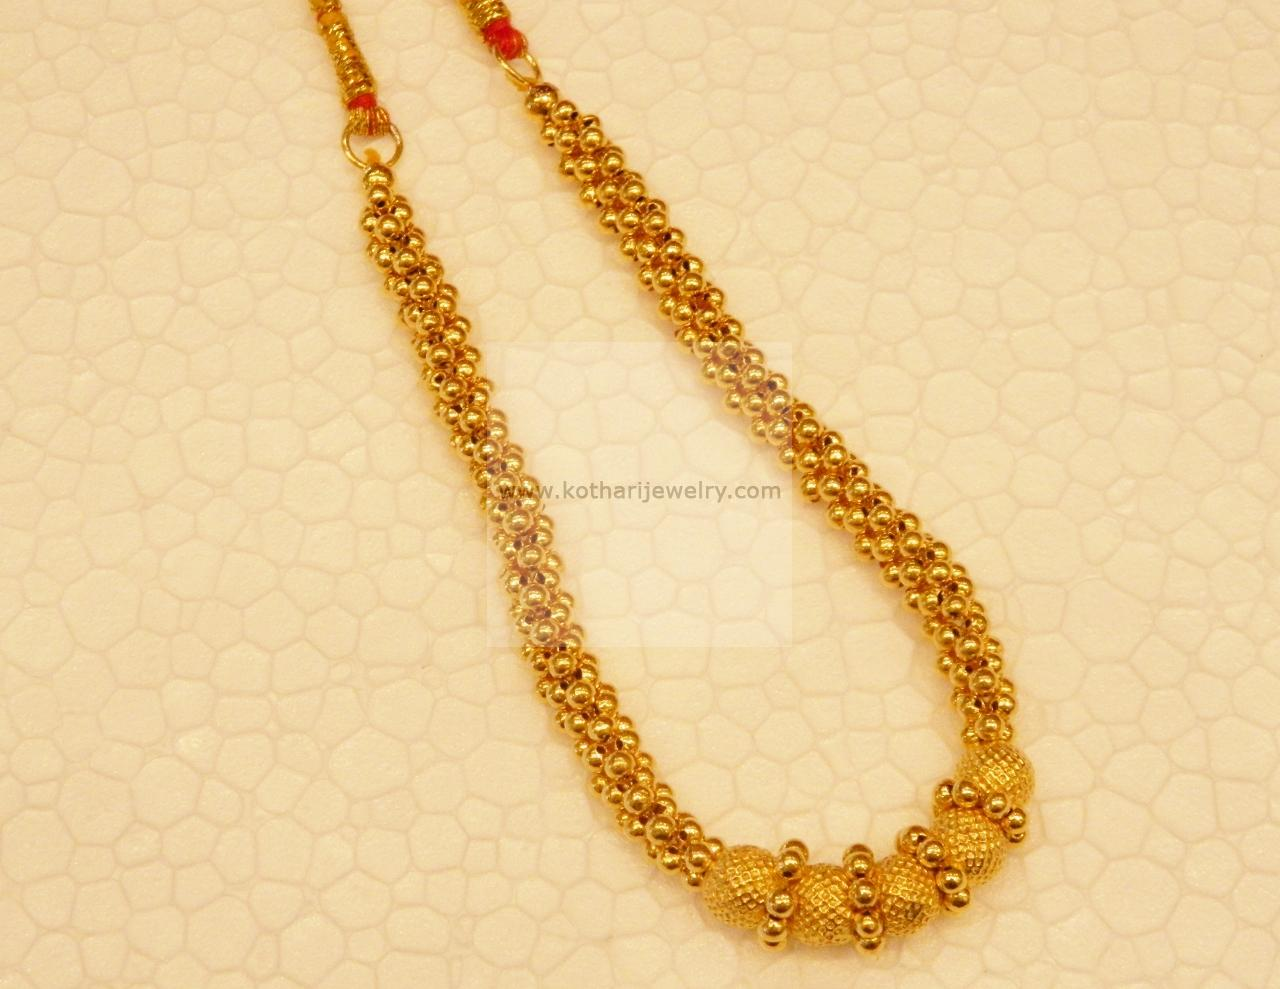 Gold Necklace - Gold thusshi necklace